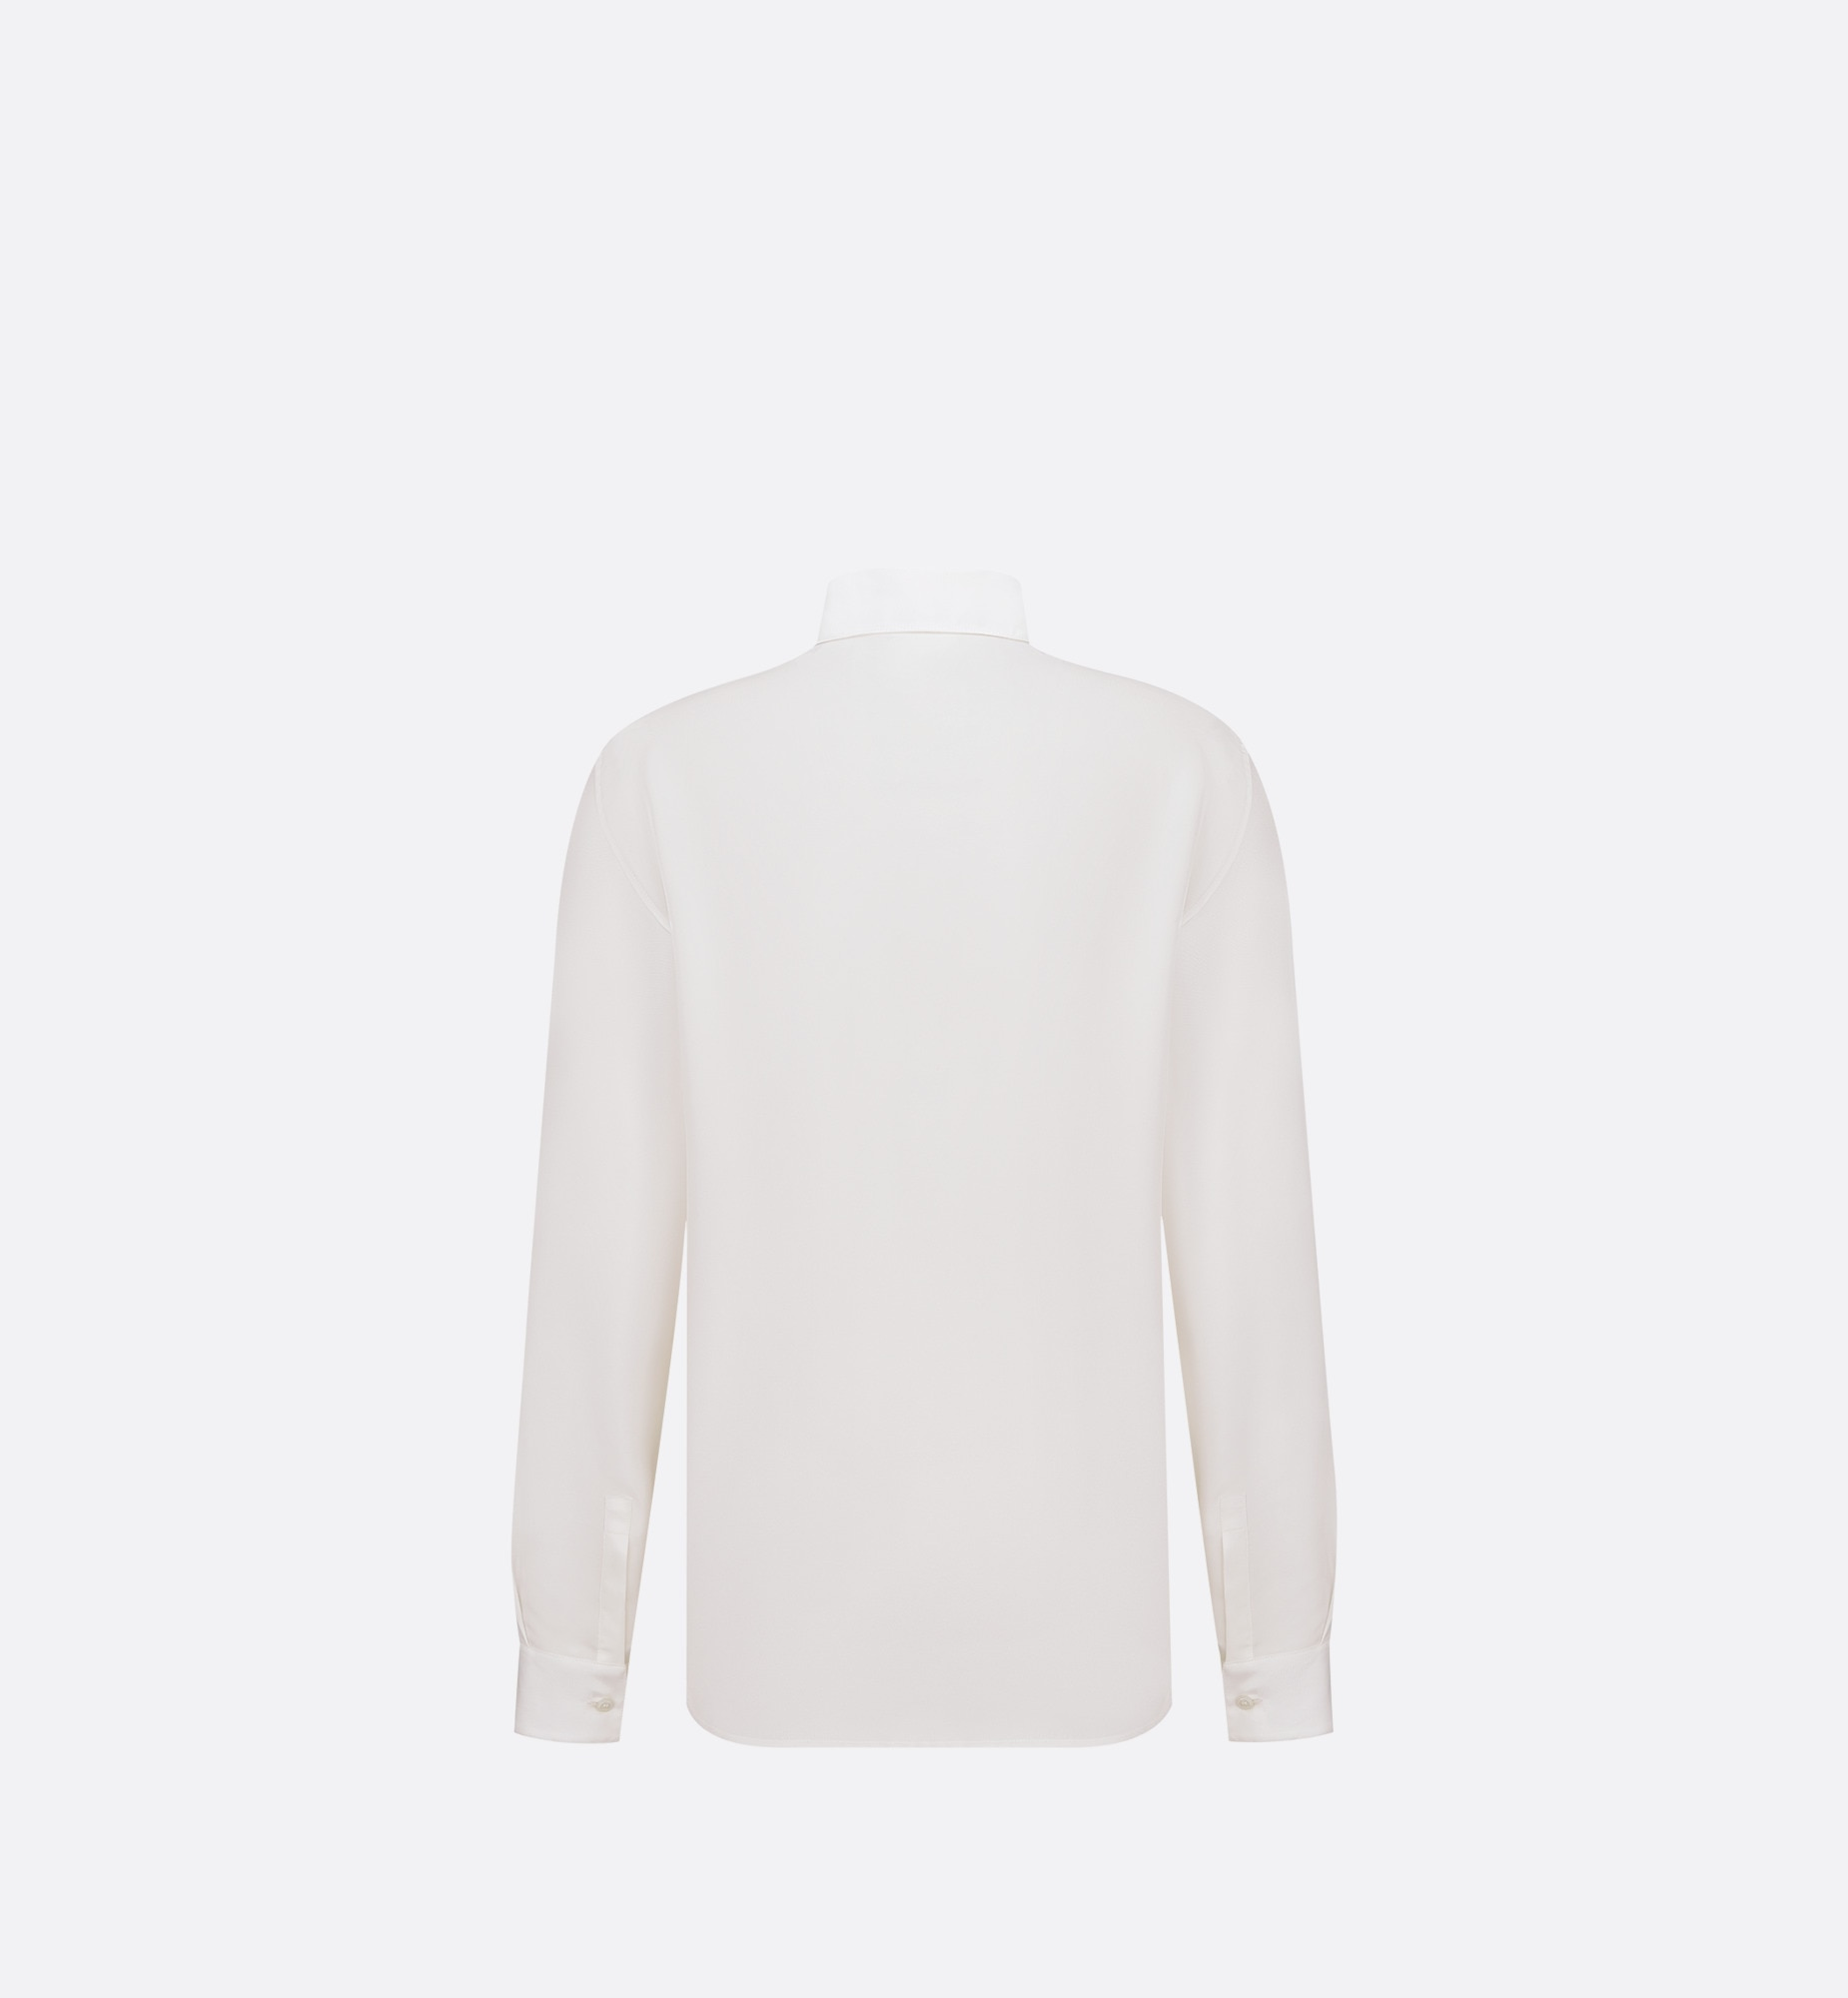 DIOR AND PETER DOIG Shirt Back view Open gallery